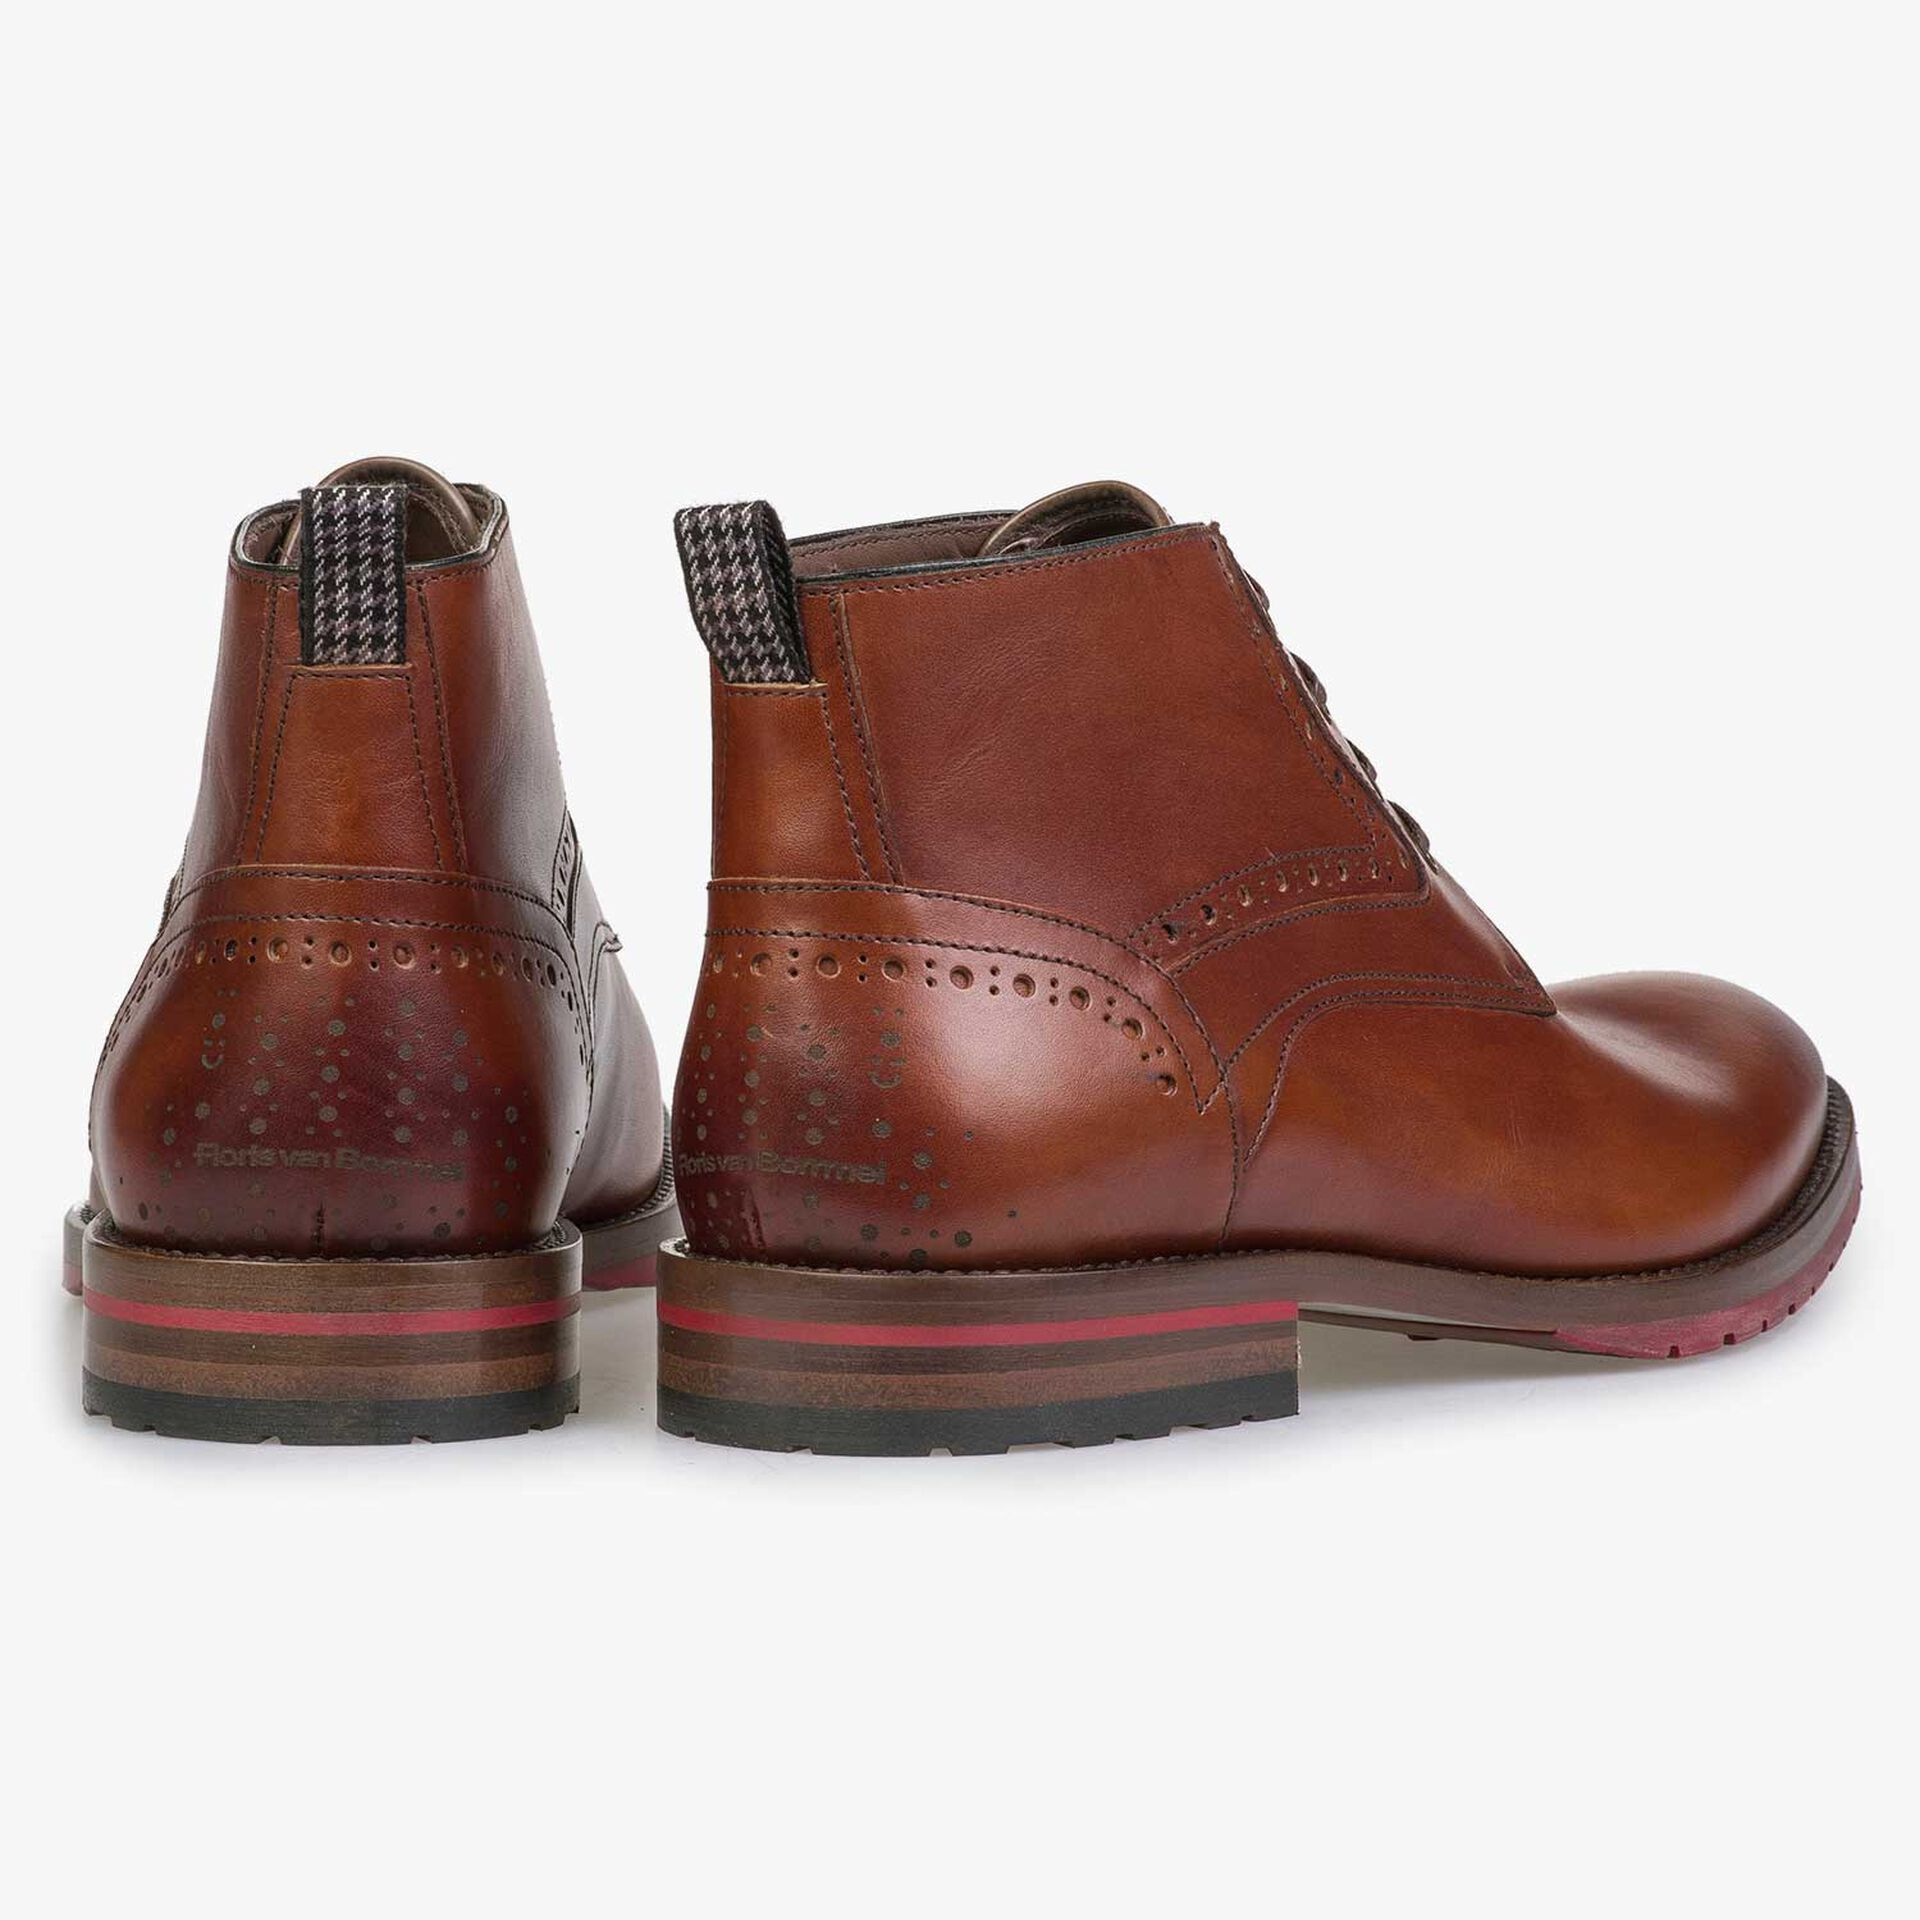 Cognac-coloured leather lace boot